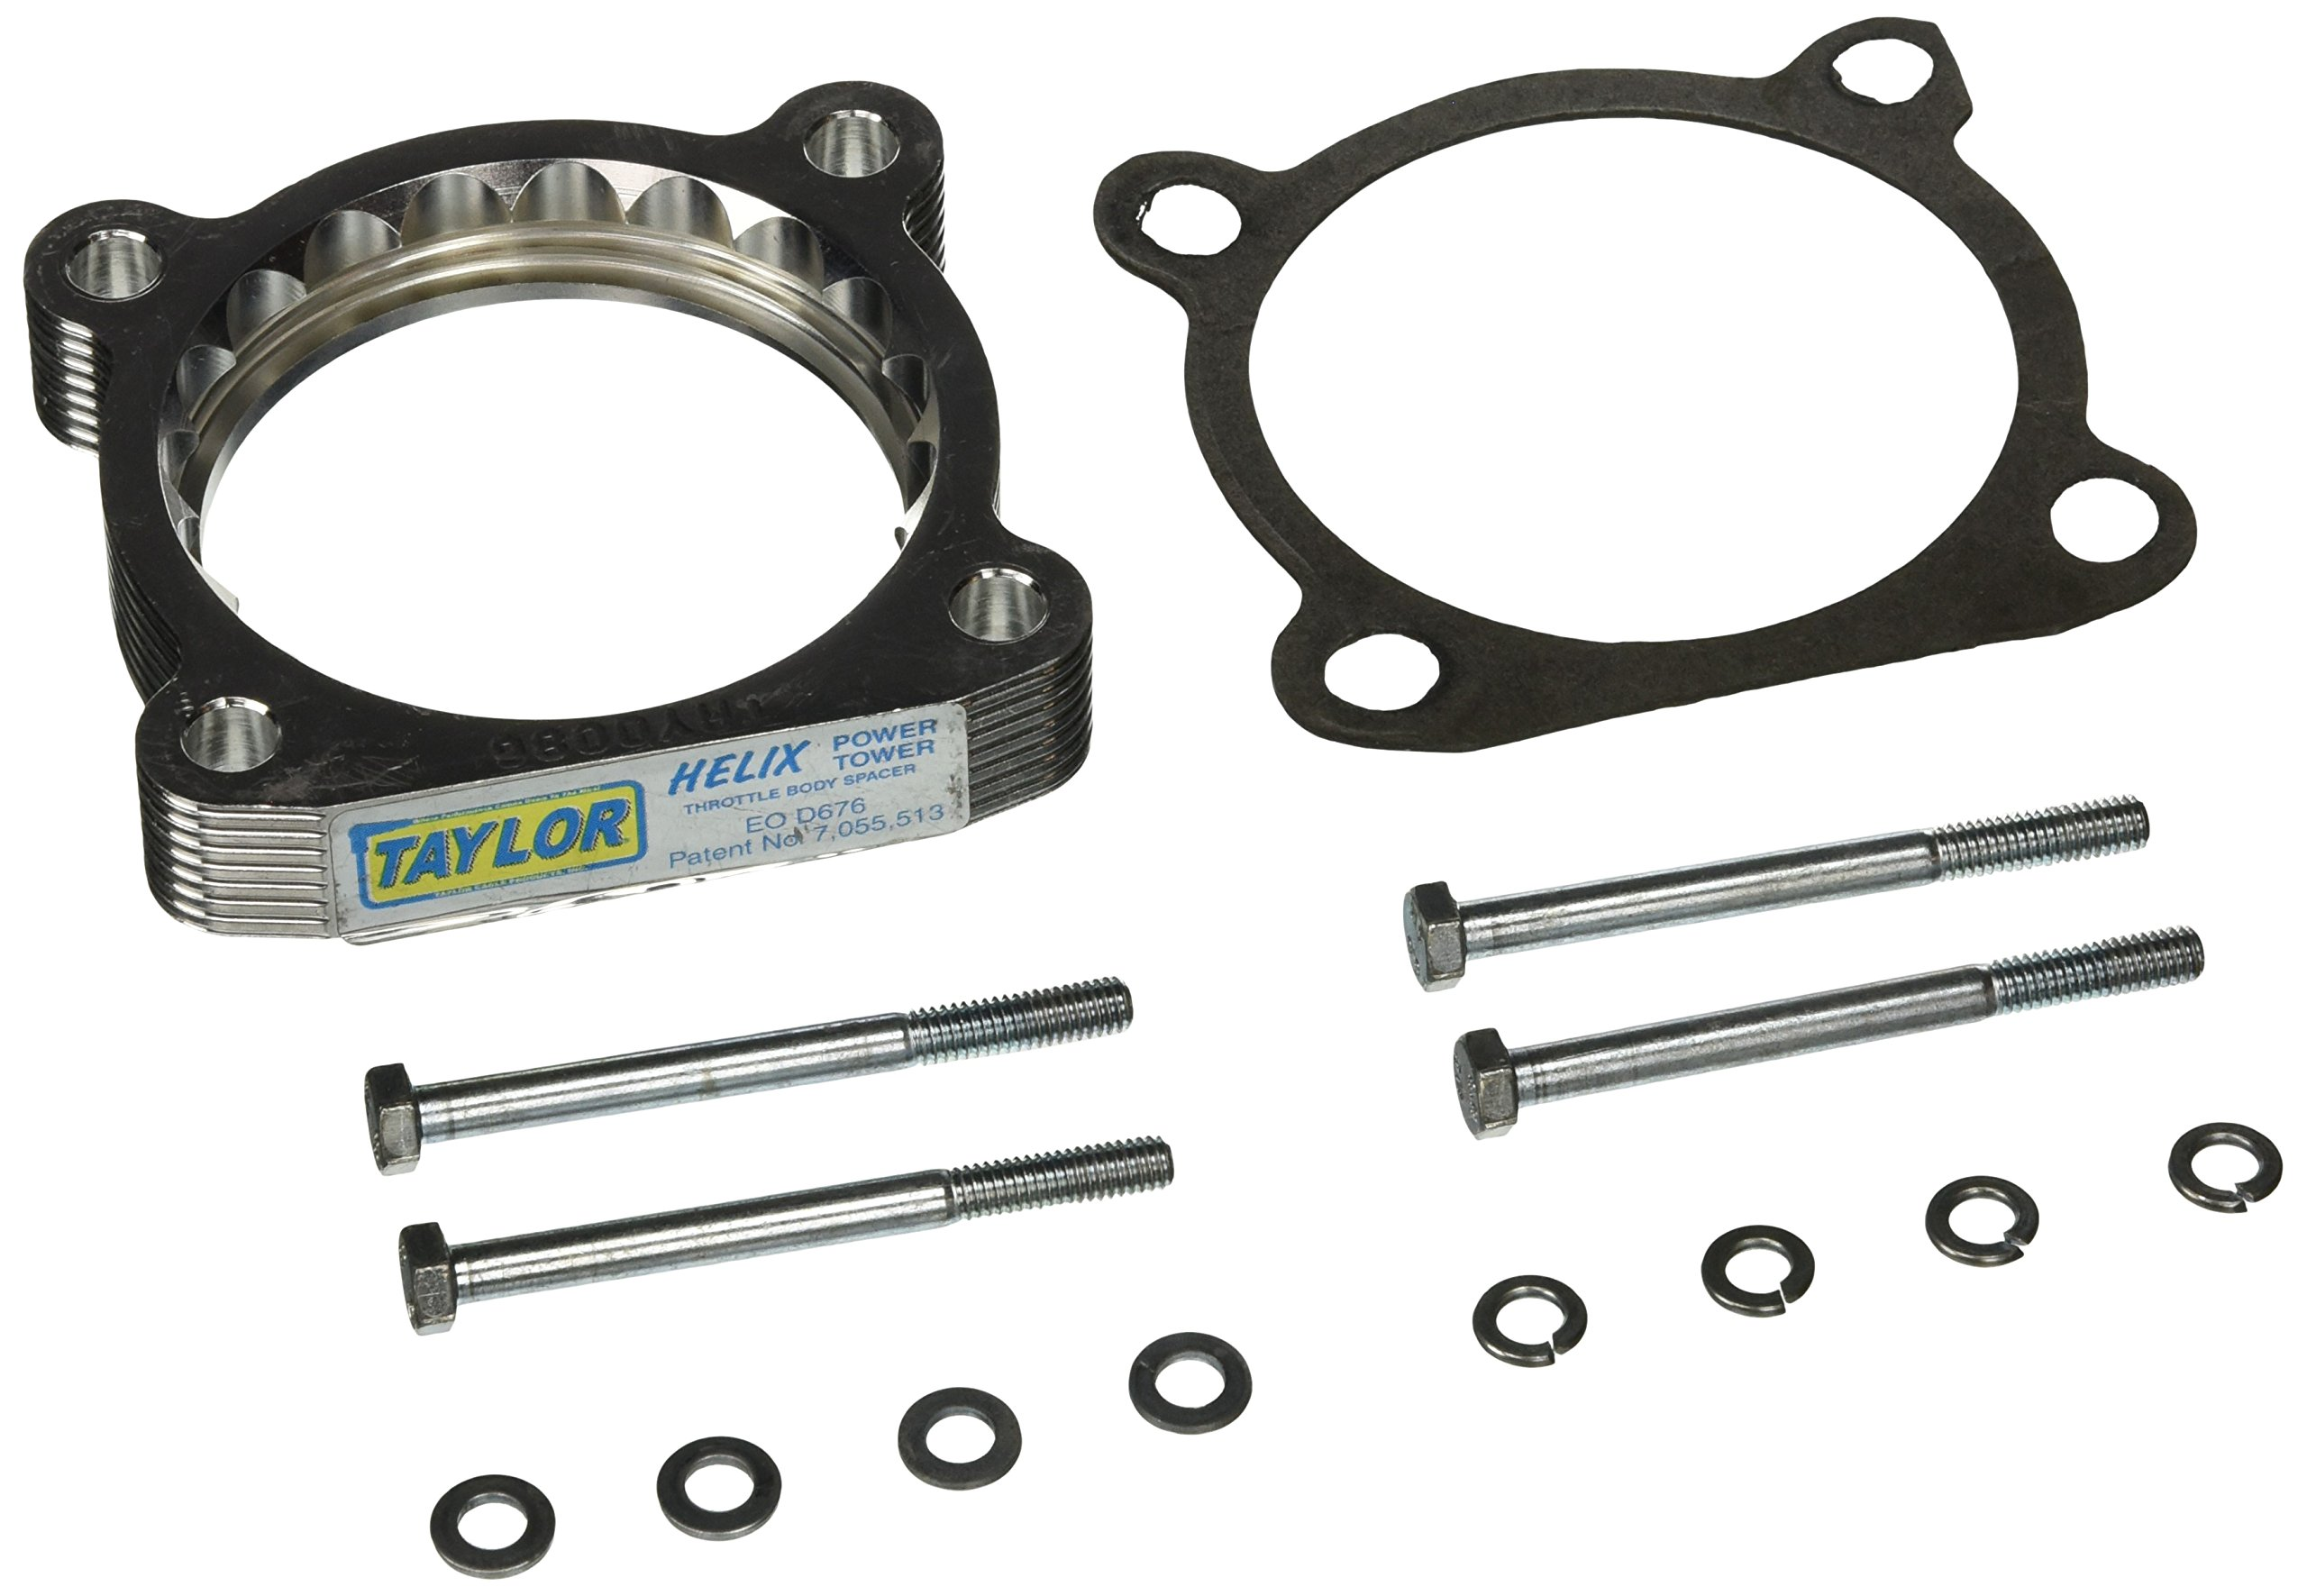 Taylor Cable 94560 Helix Power Tower Plus Throttle Body Spacer